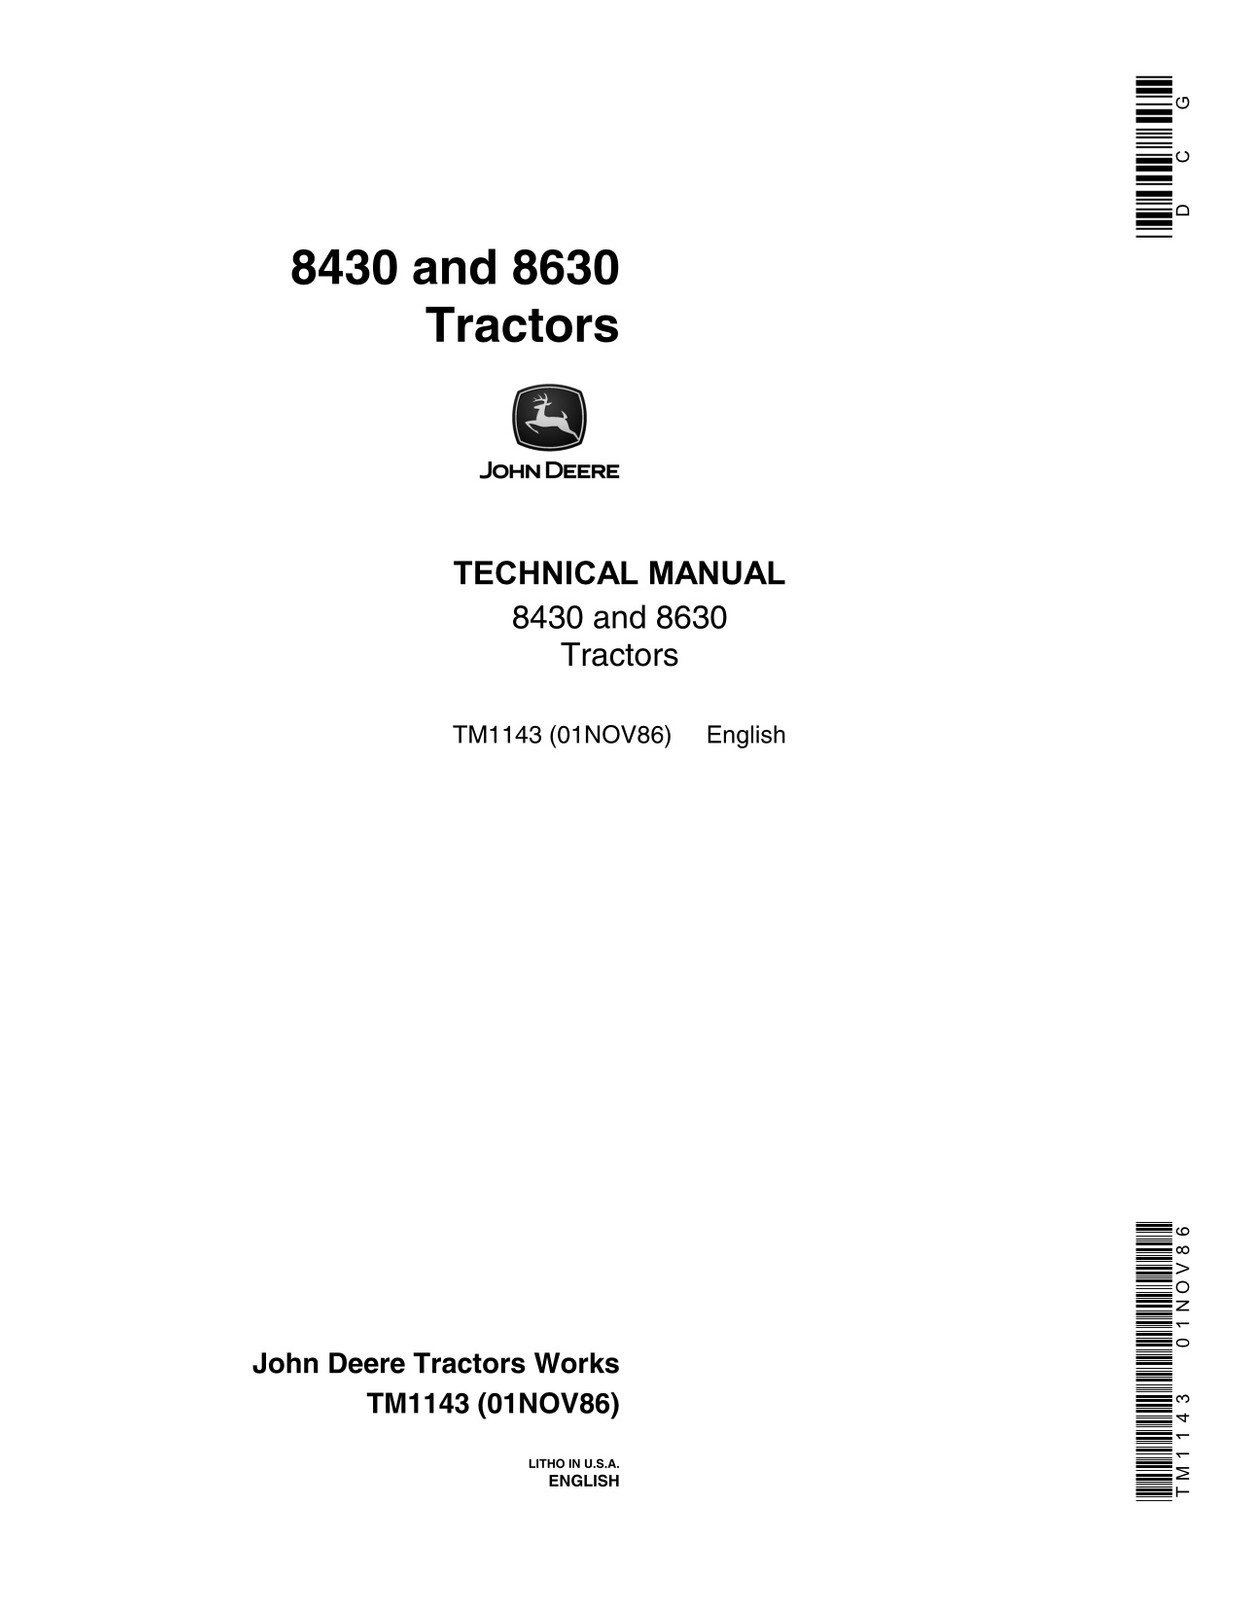 John Deere 8430 8630 technical manual TM1143  -  english